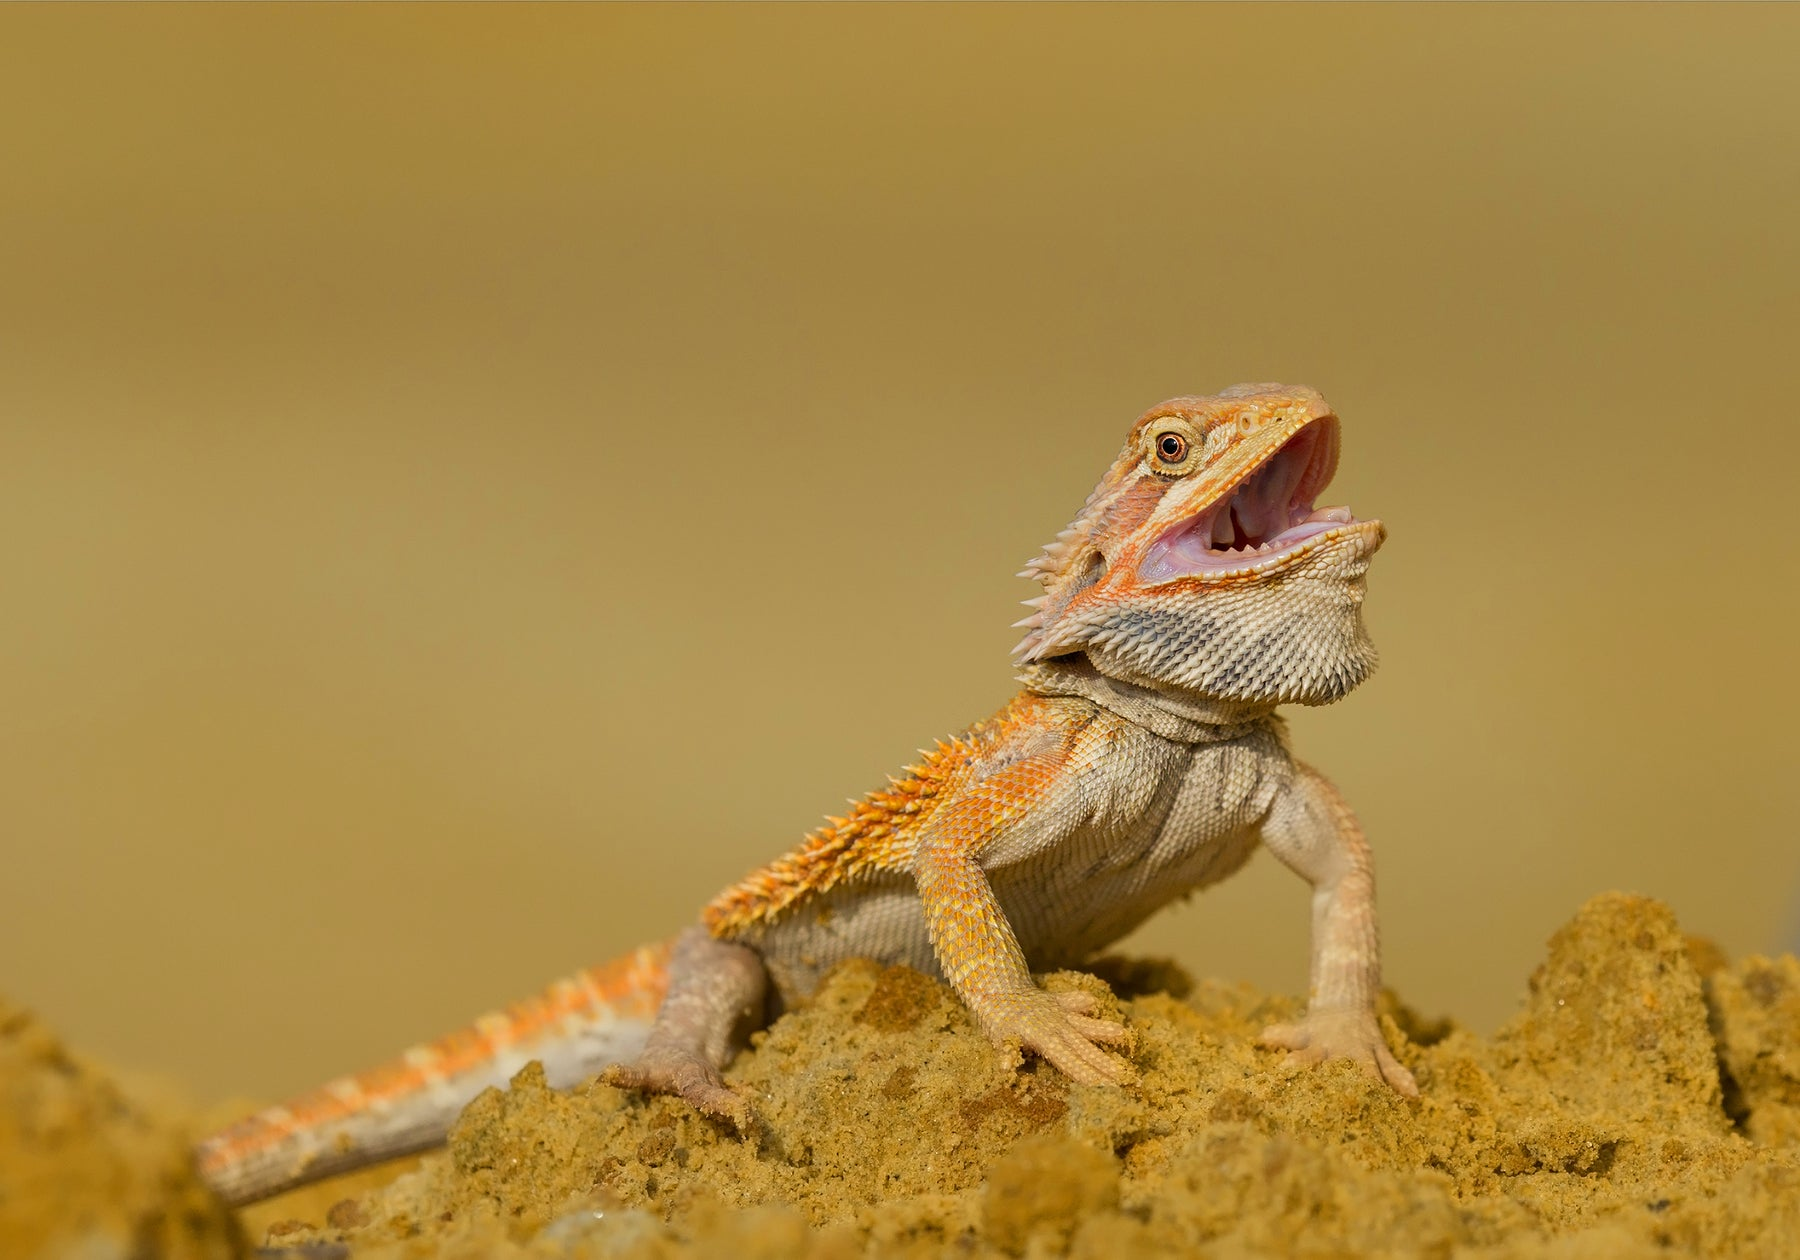 What Should I Do If My Bearded Dragon is Not Eating?